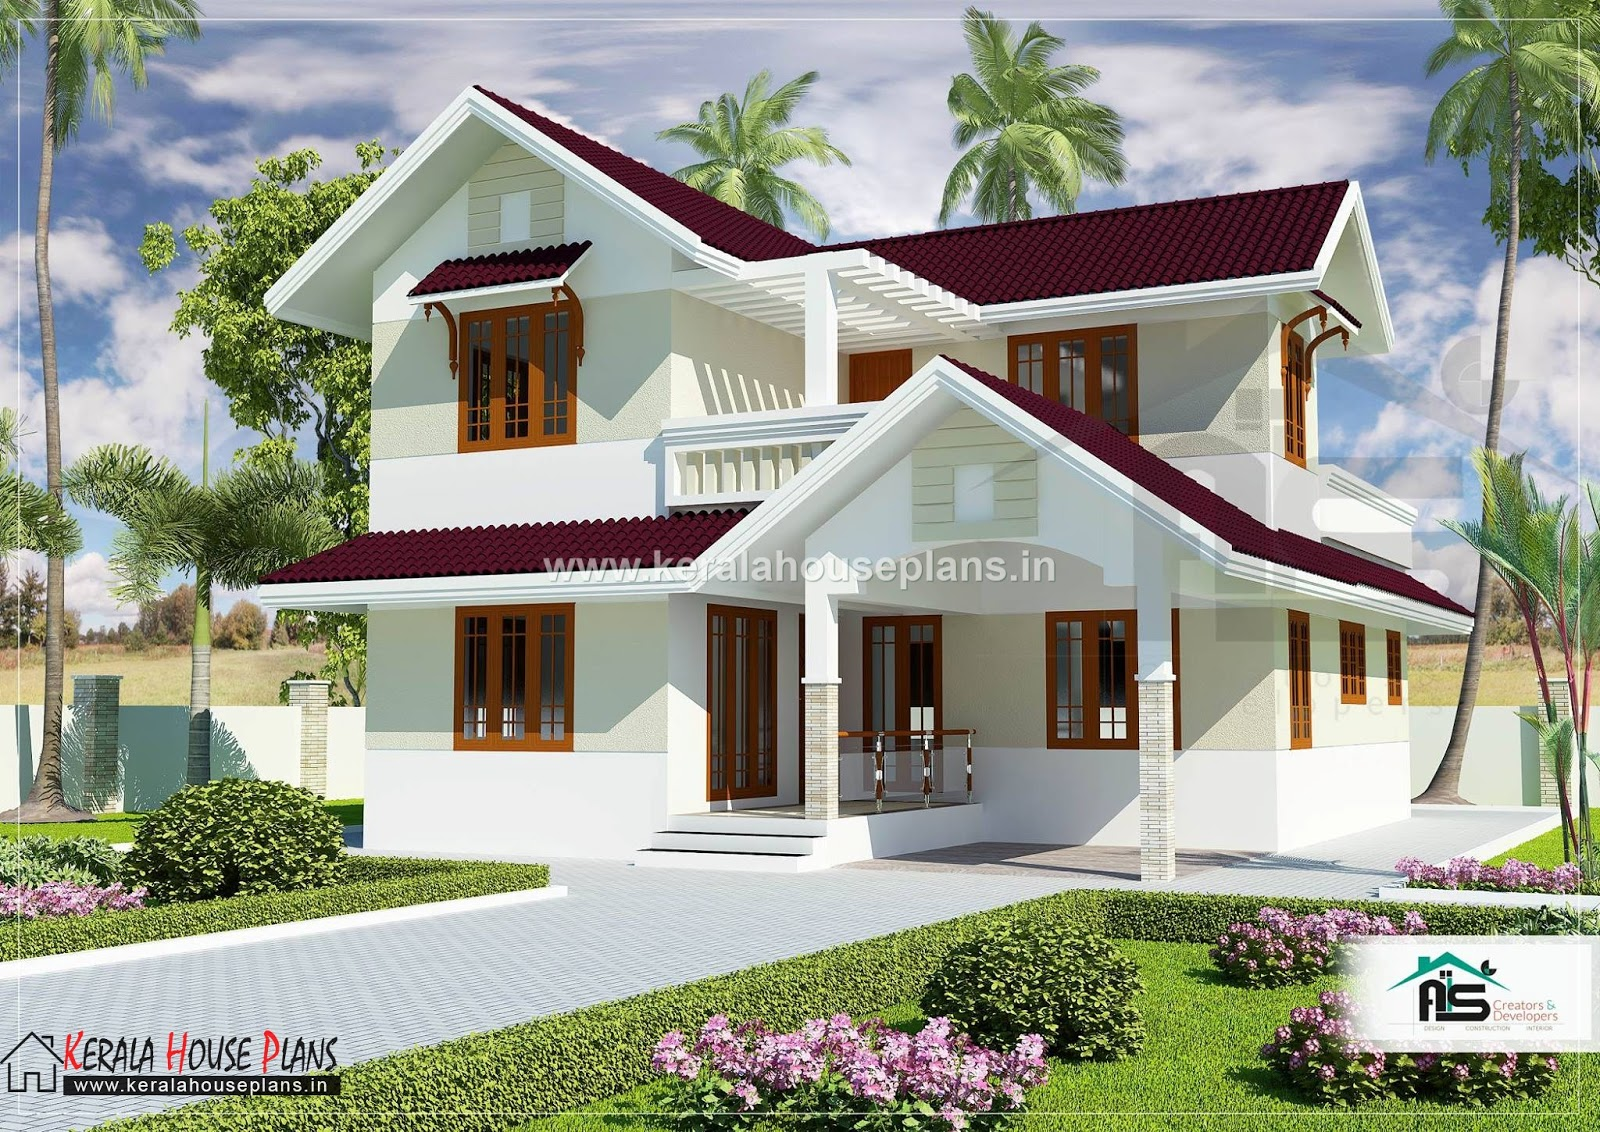 Kerala model houses plans home design and style for Latest kerala model house plans